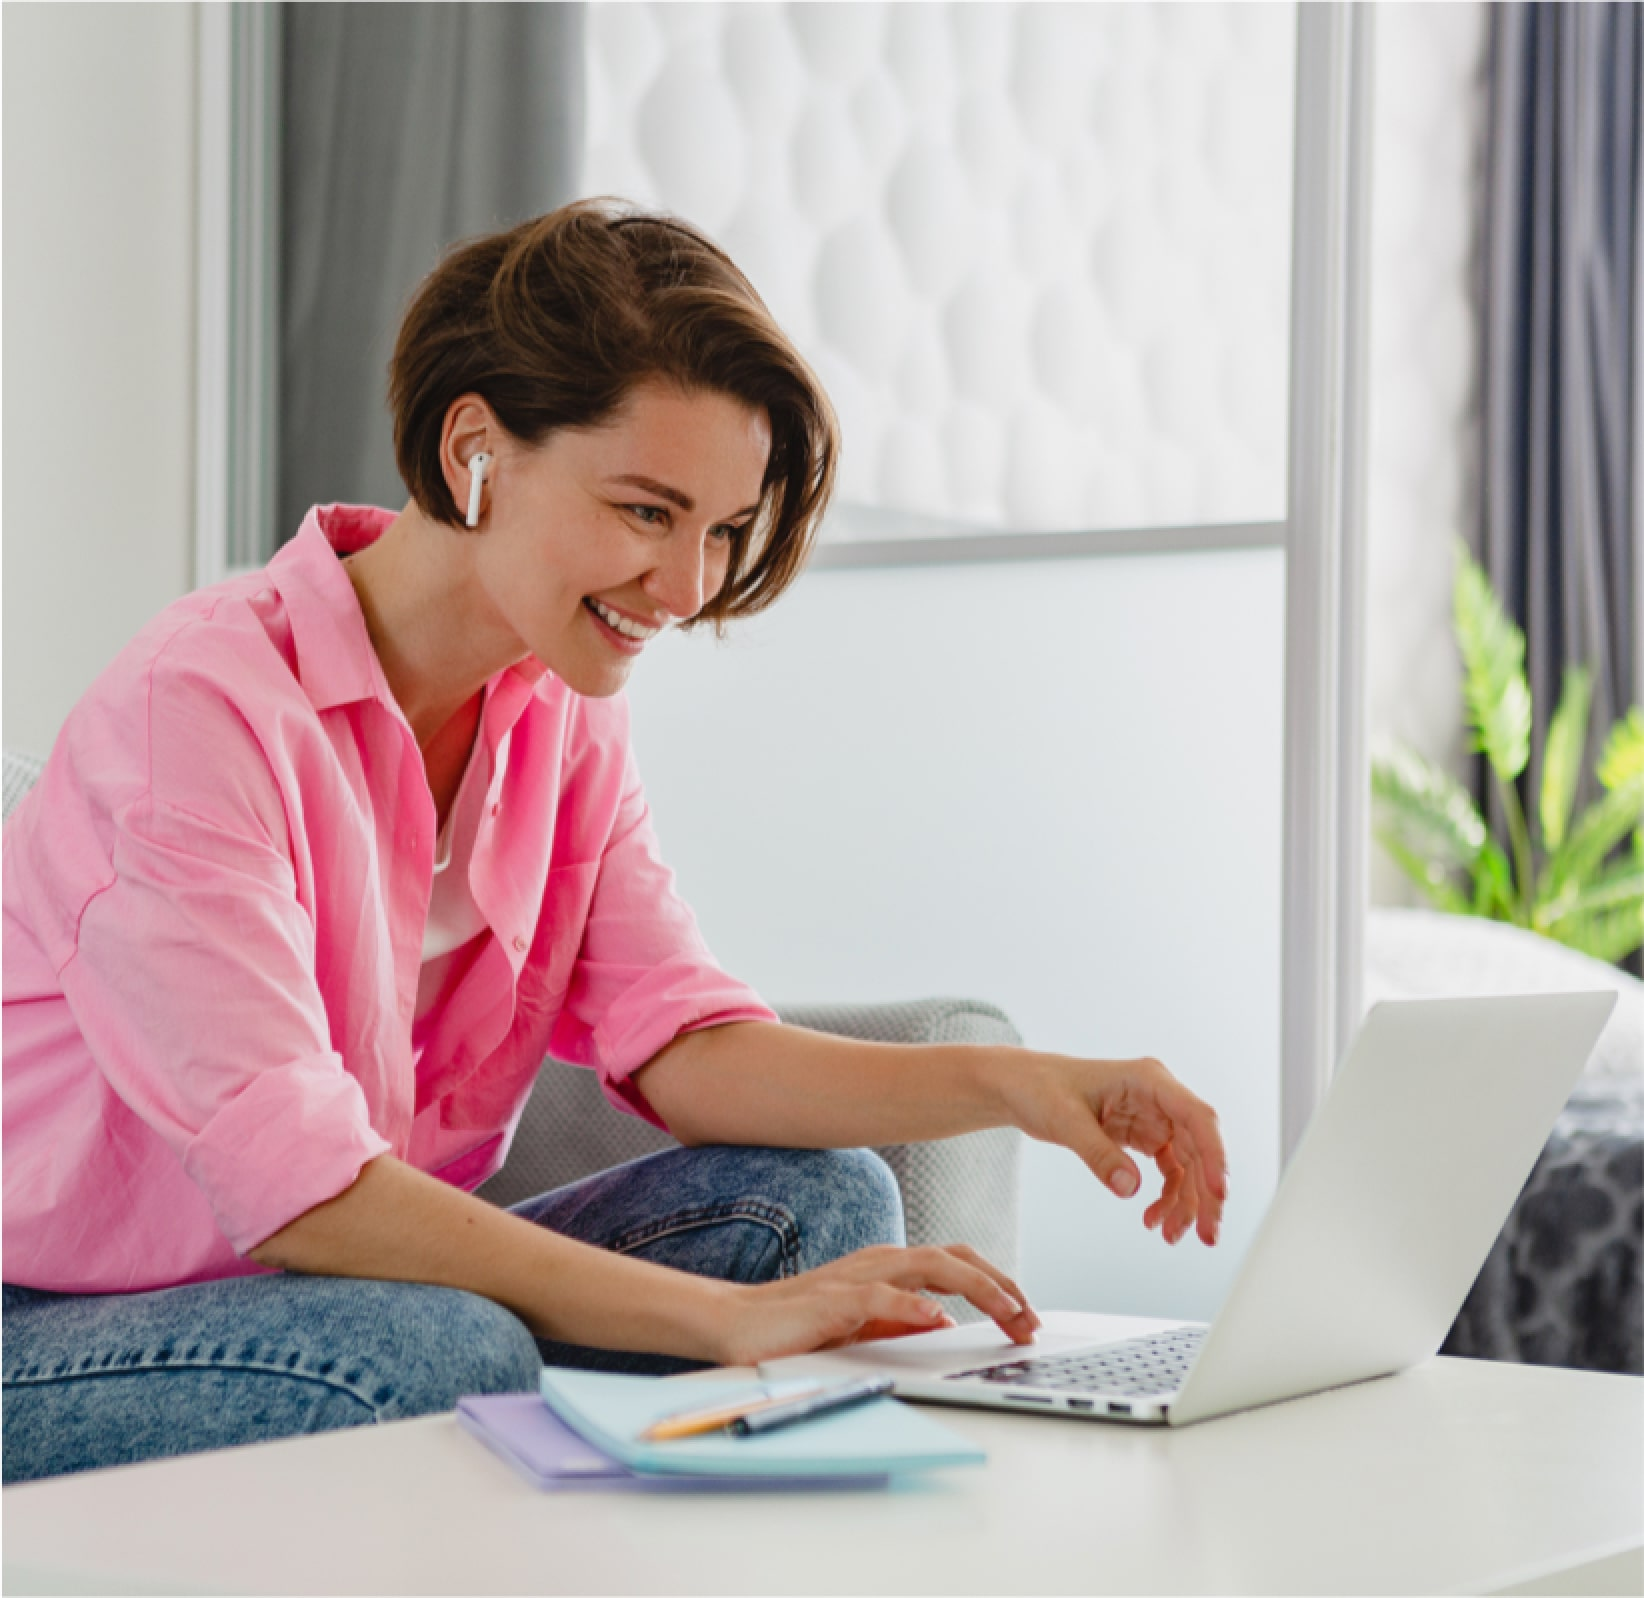 smiling woman in a pink shirt works on her laptop.